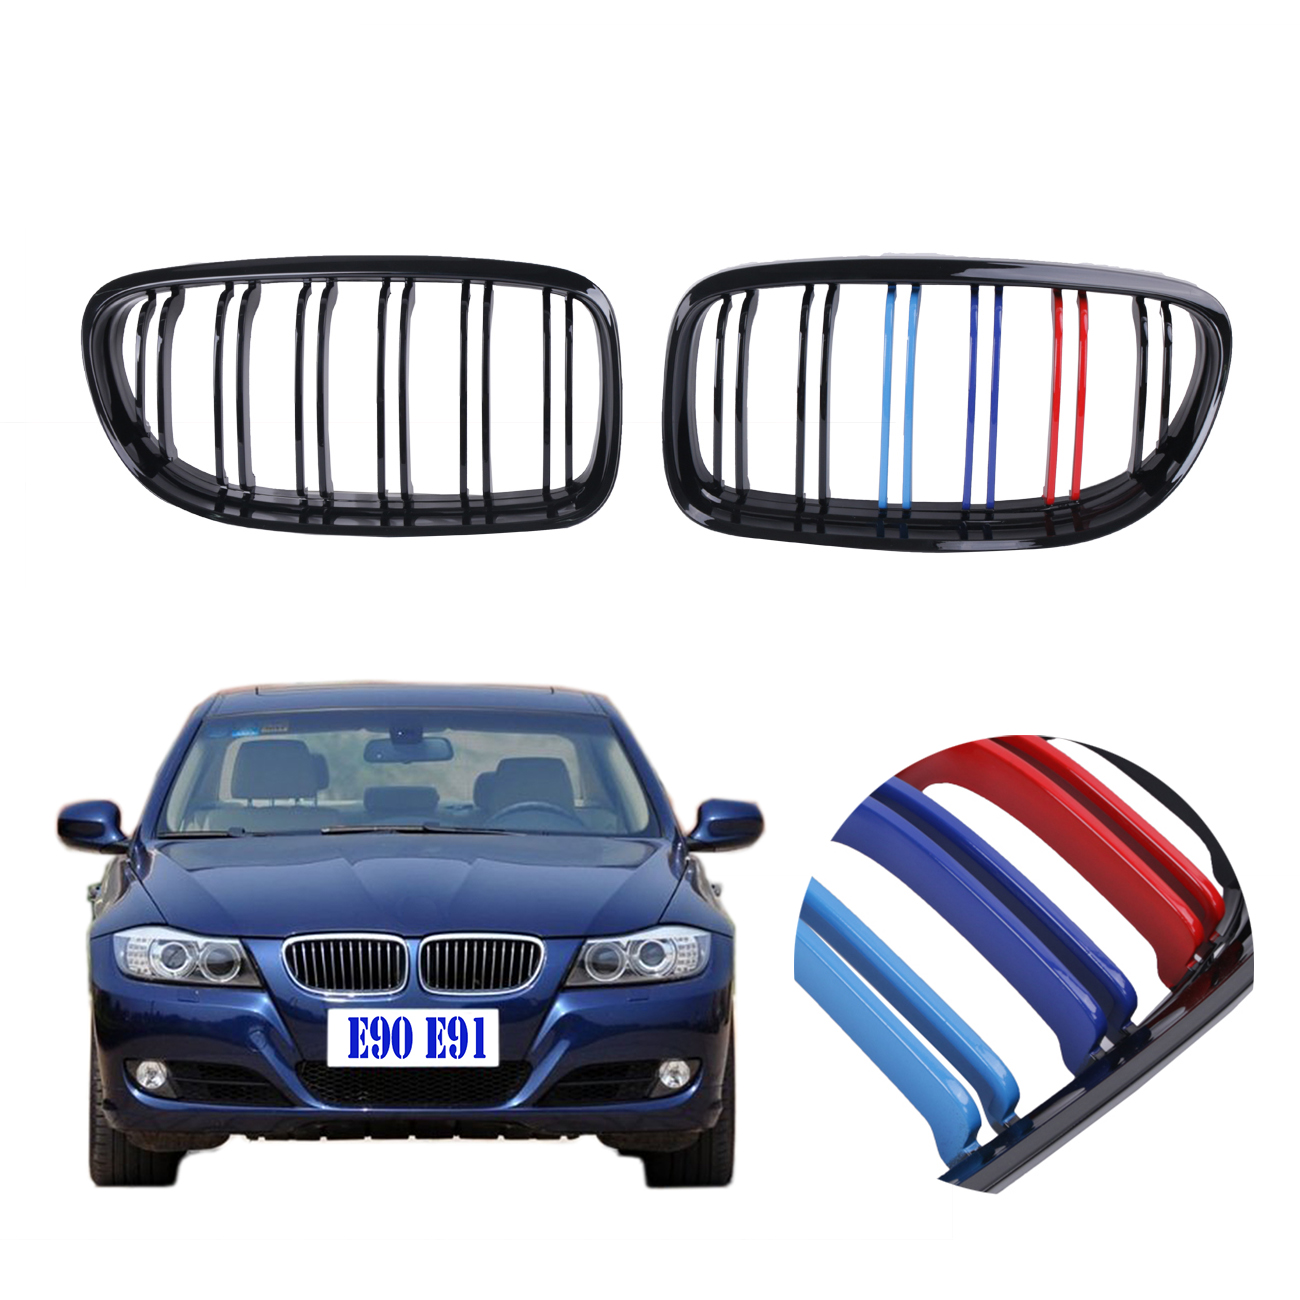 small resolution of for bmw e90 e91 lci 318i 320i 320d 328i 335i 2009 2010 2011 glossy black m color front kidney grilles double line grill p461 in racing grills from